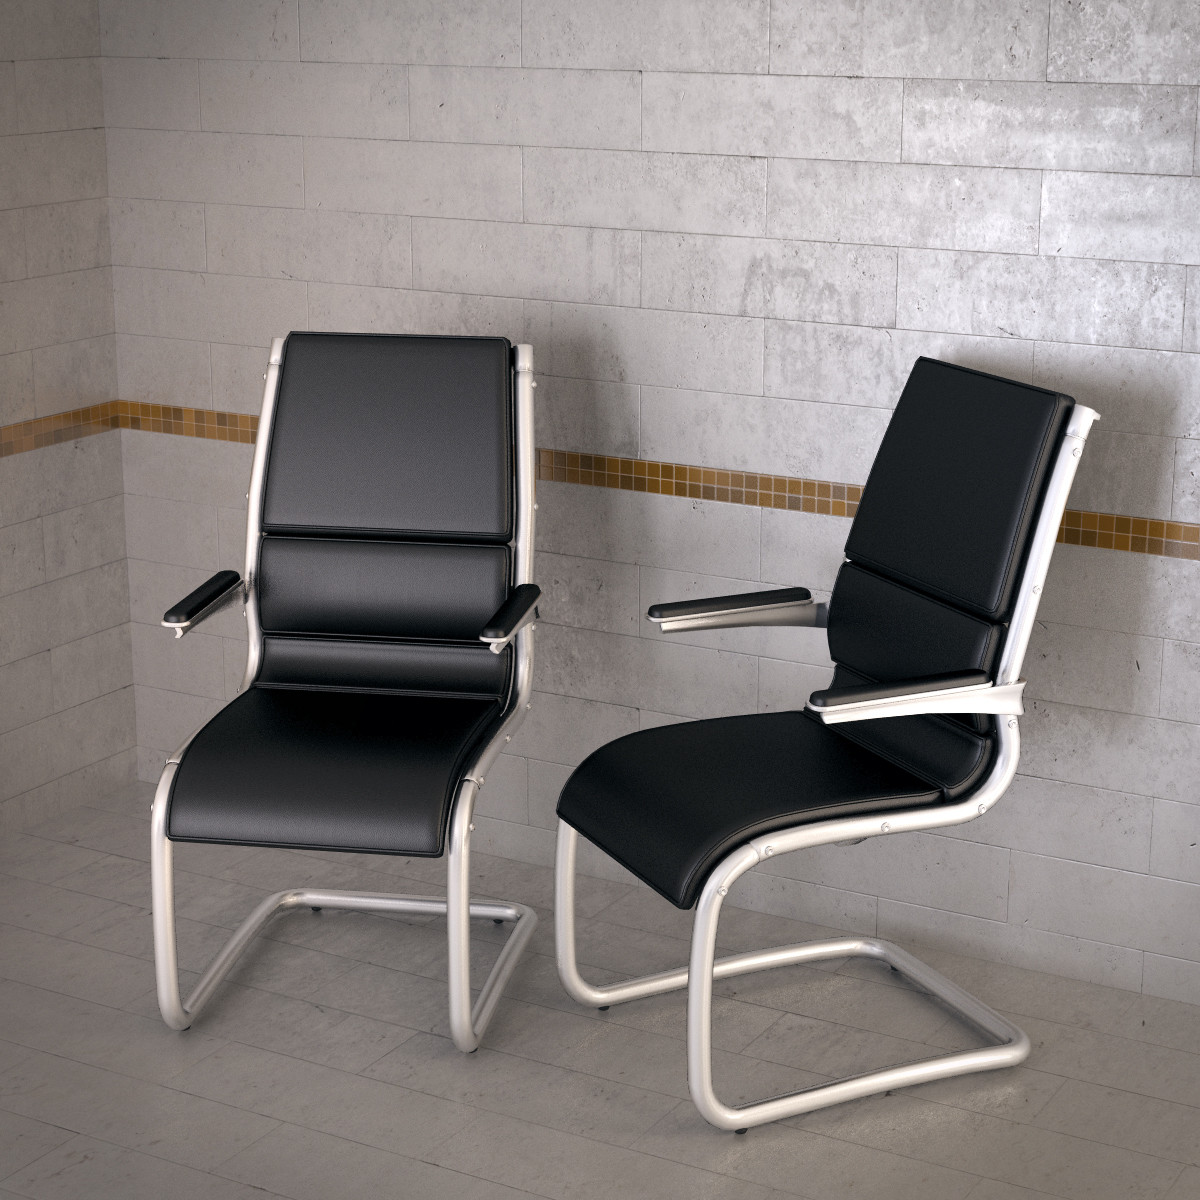 3d model artes sit it chair topdeq for Topdeq design